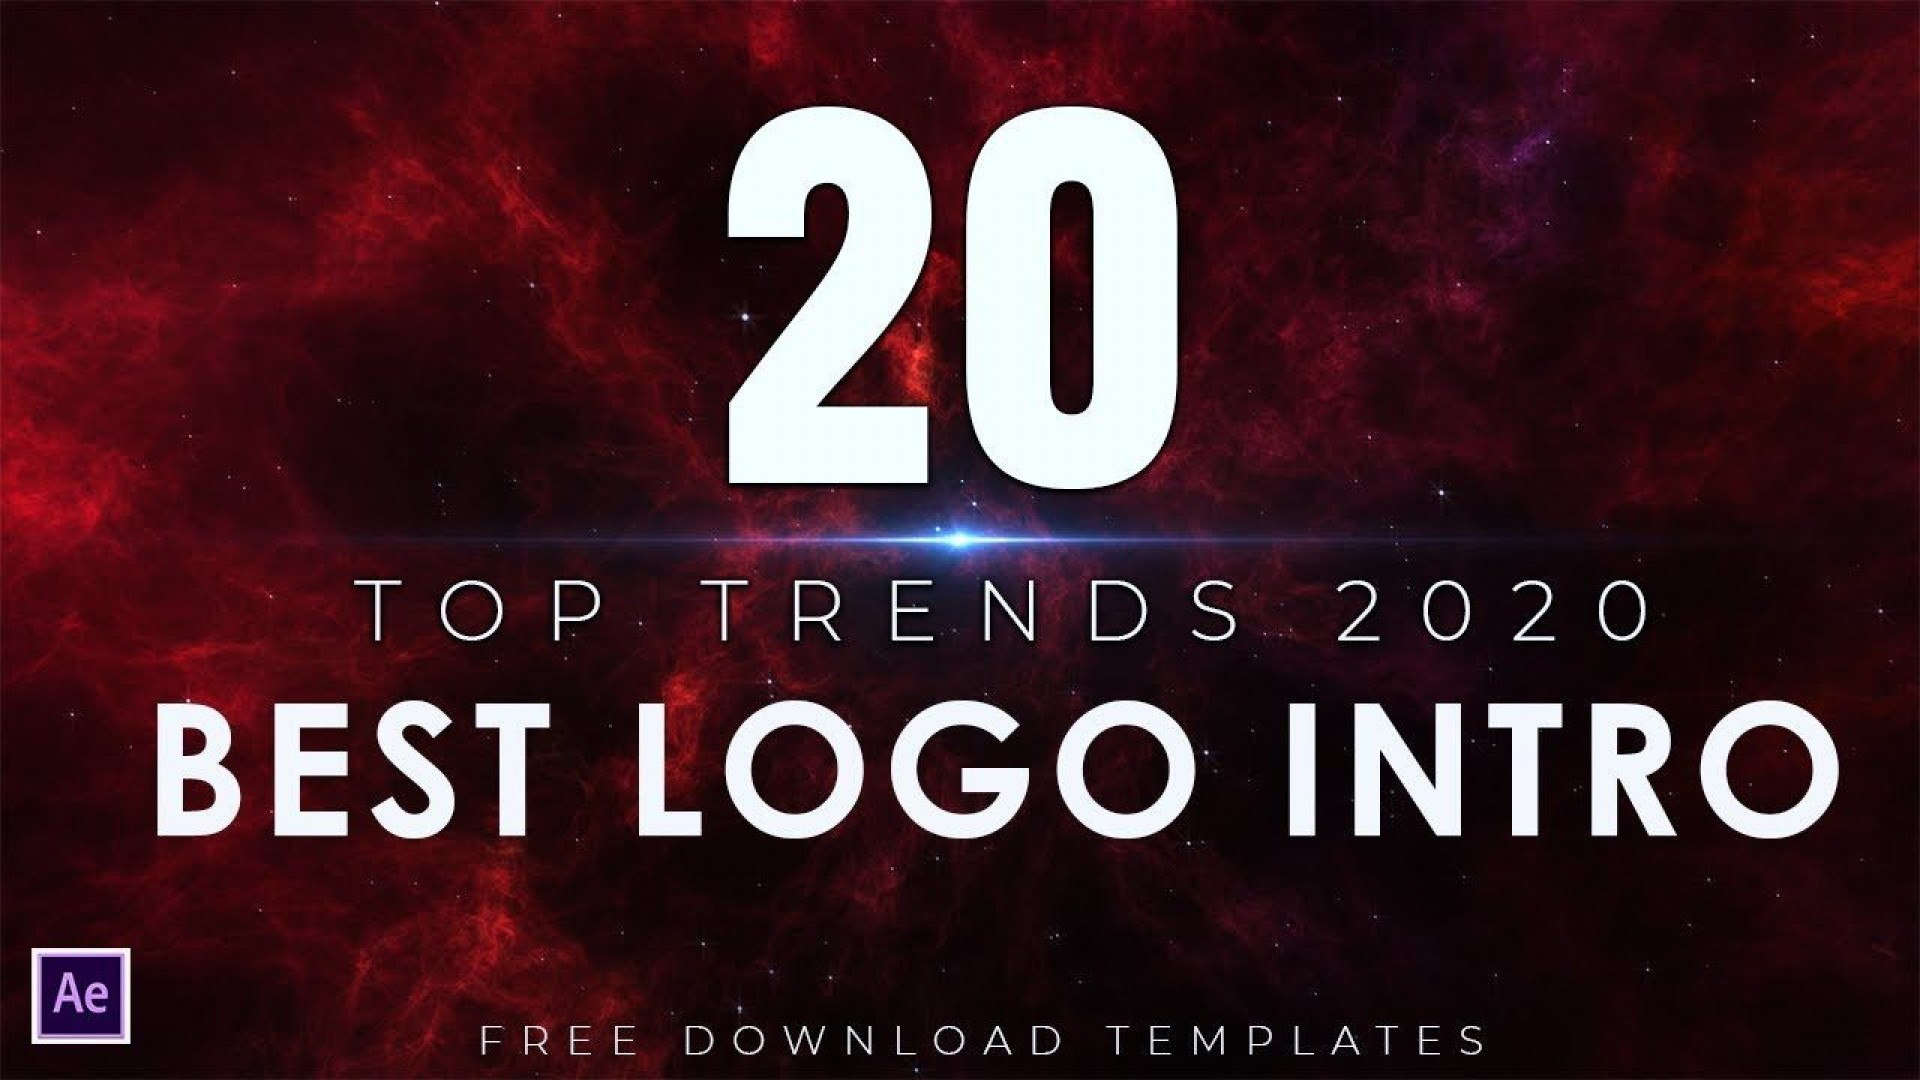 004 Stupendou Free Adobe After Effect Logo Intro Template Inspiration  Templates1920